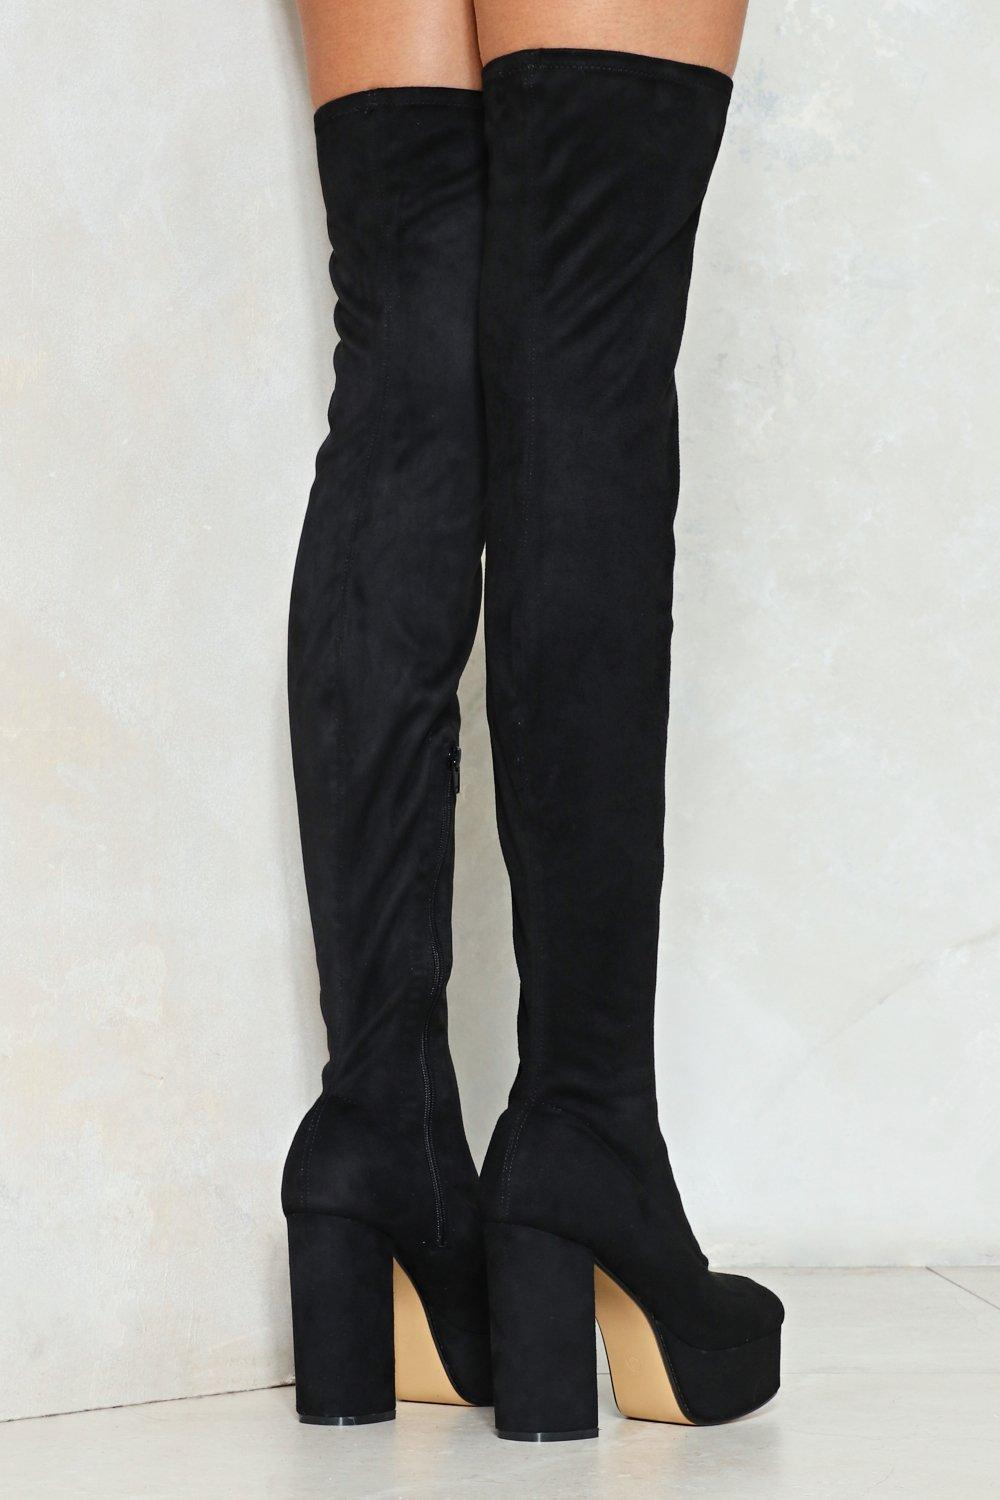 18237027b4 Take the High Road Thigh-High Boot | Shop Clothes at Nasty Gal!